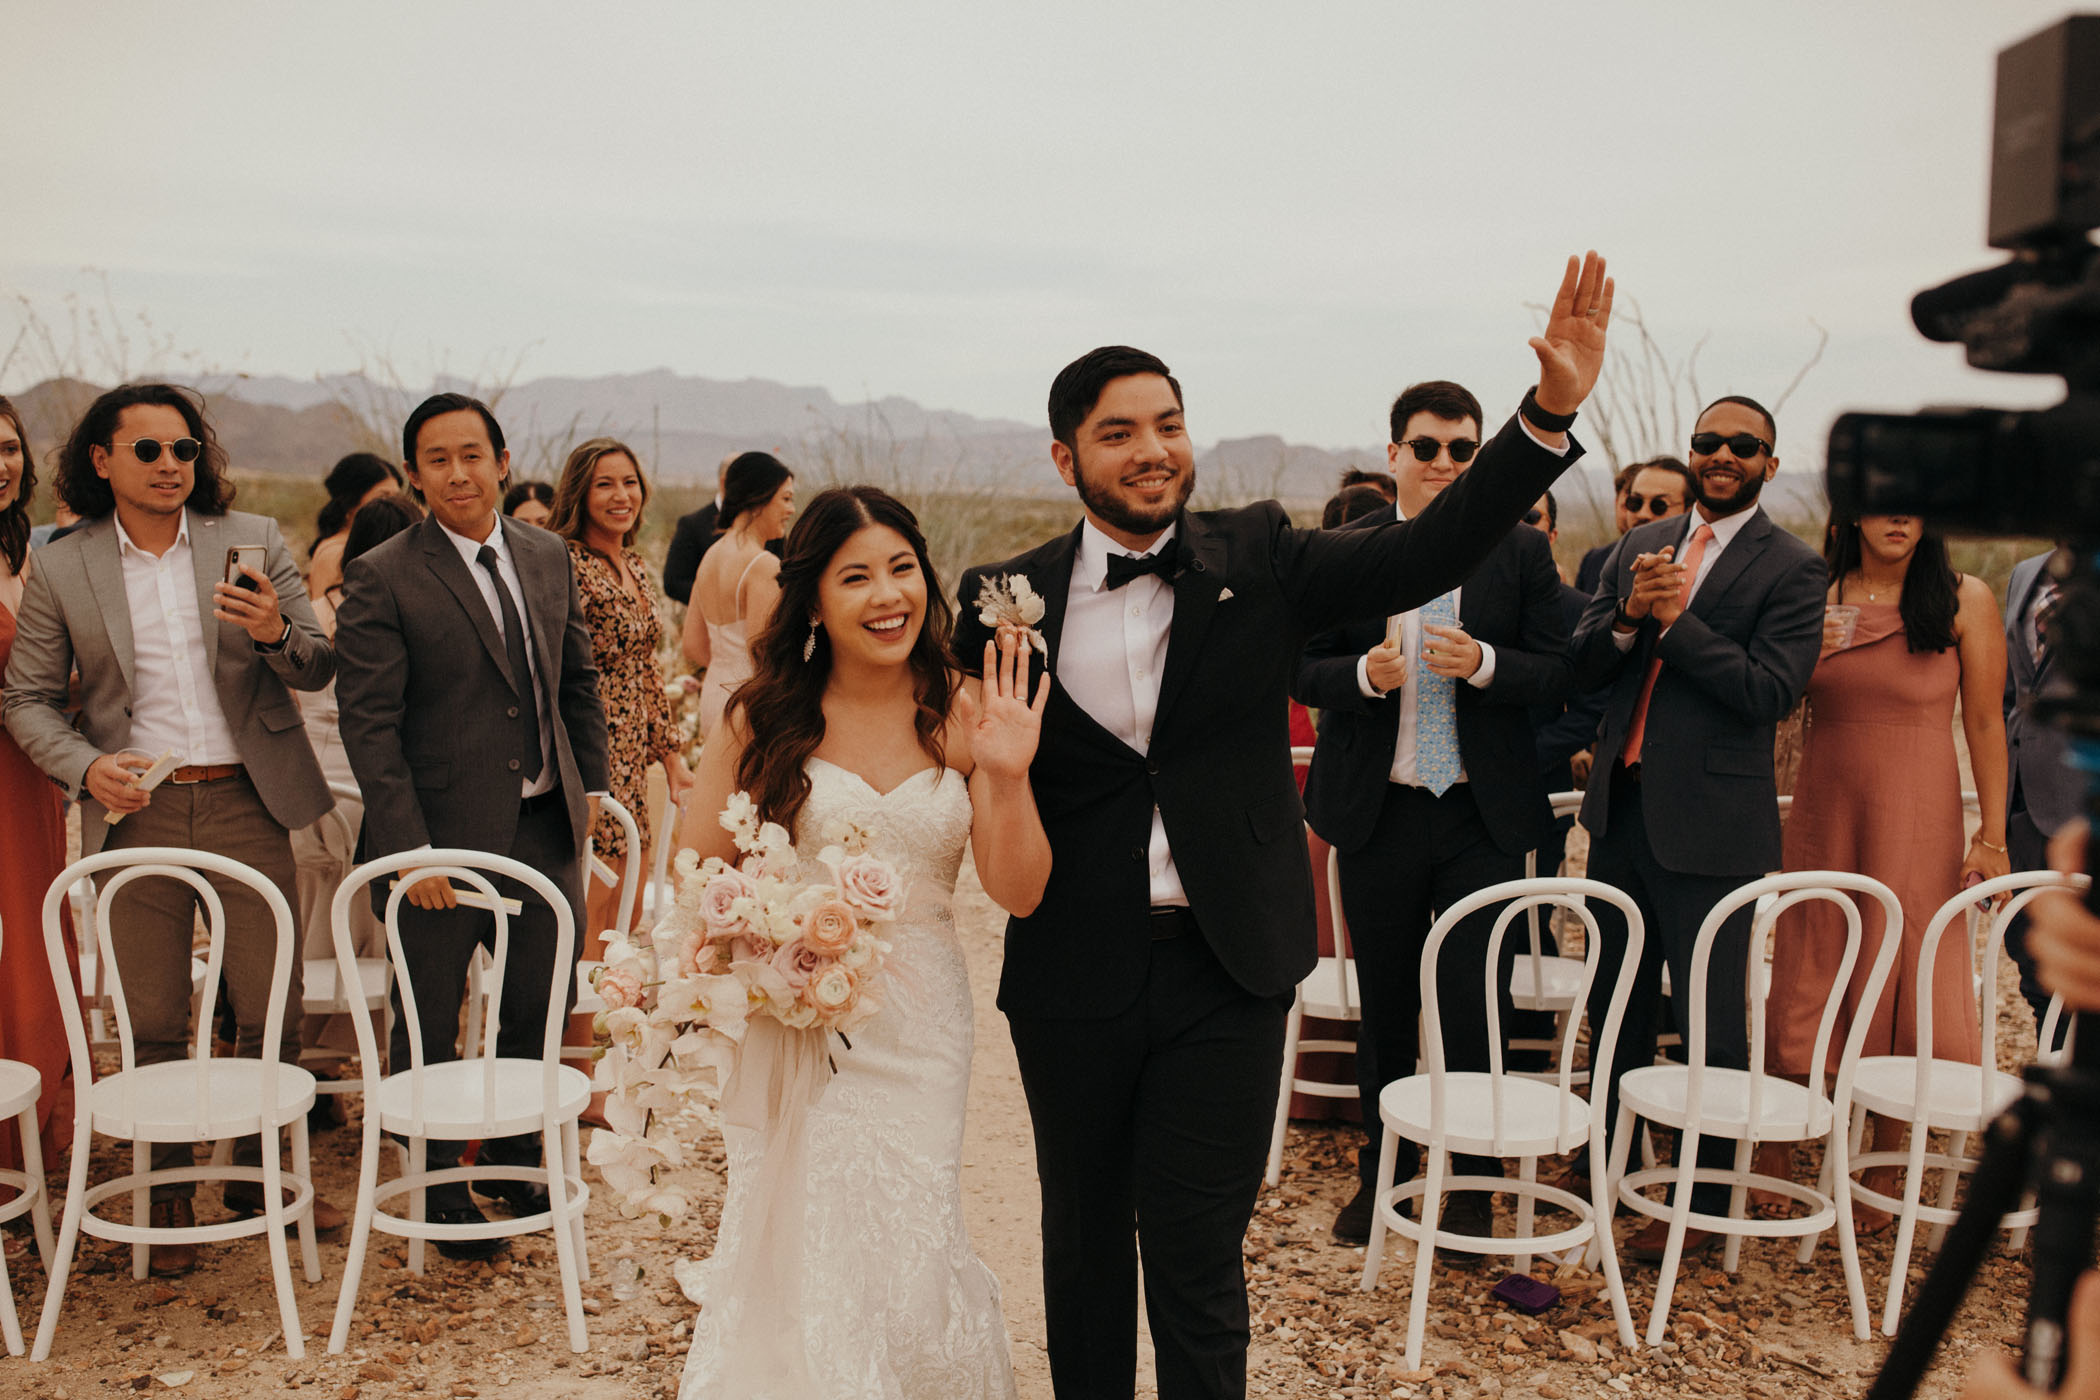 Happy couple waving to their friends after saying their vows